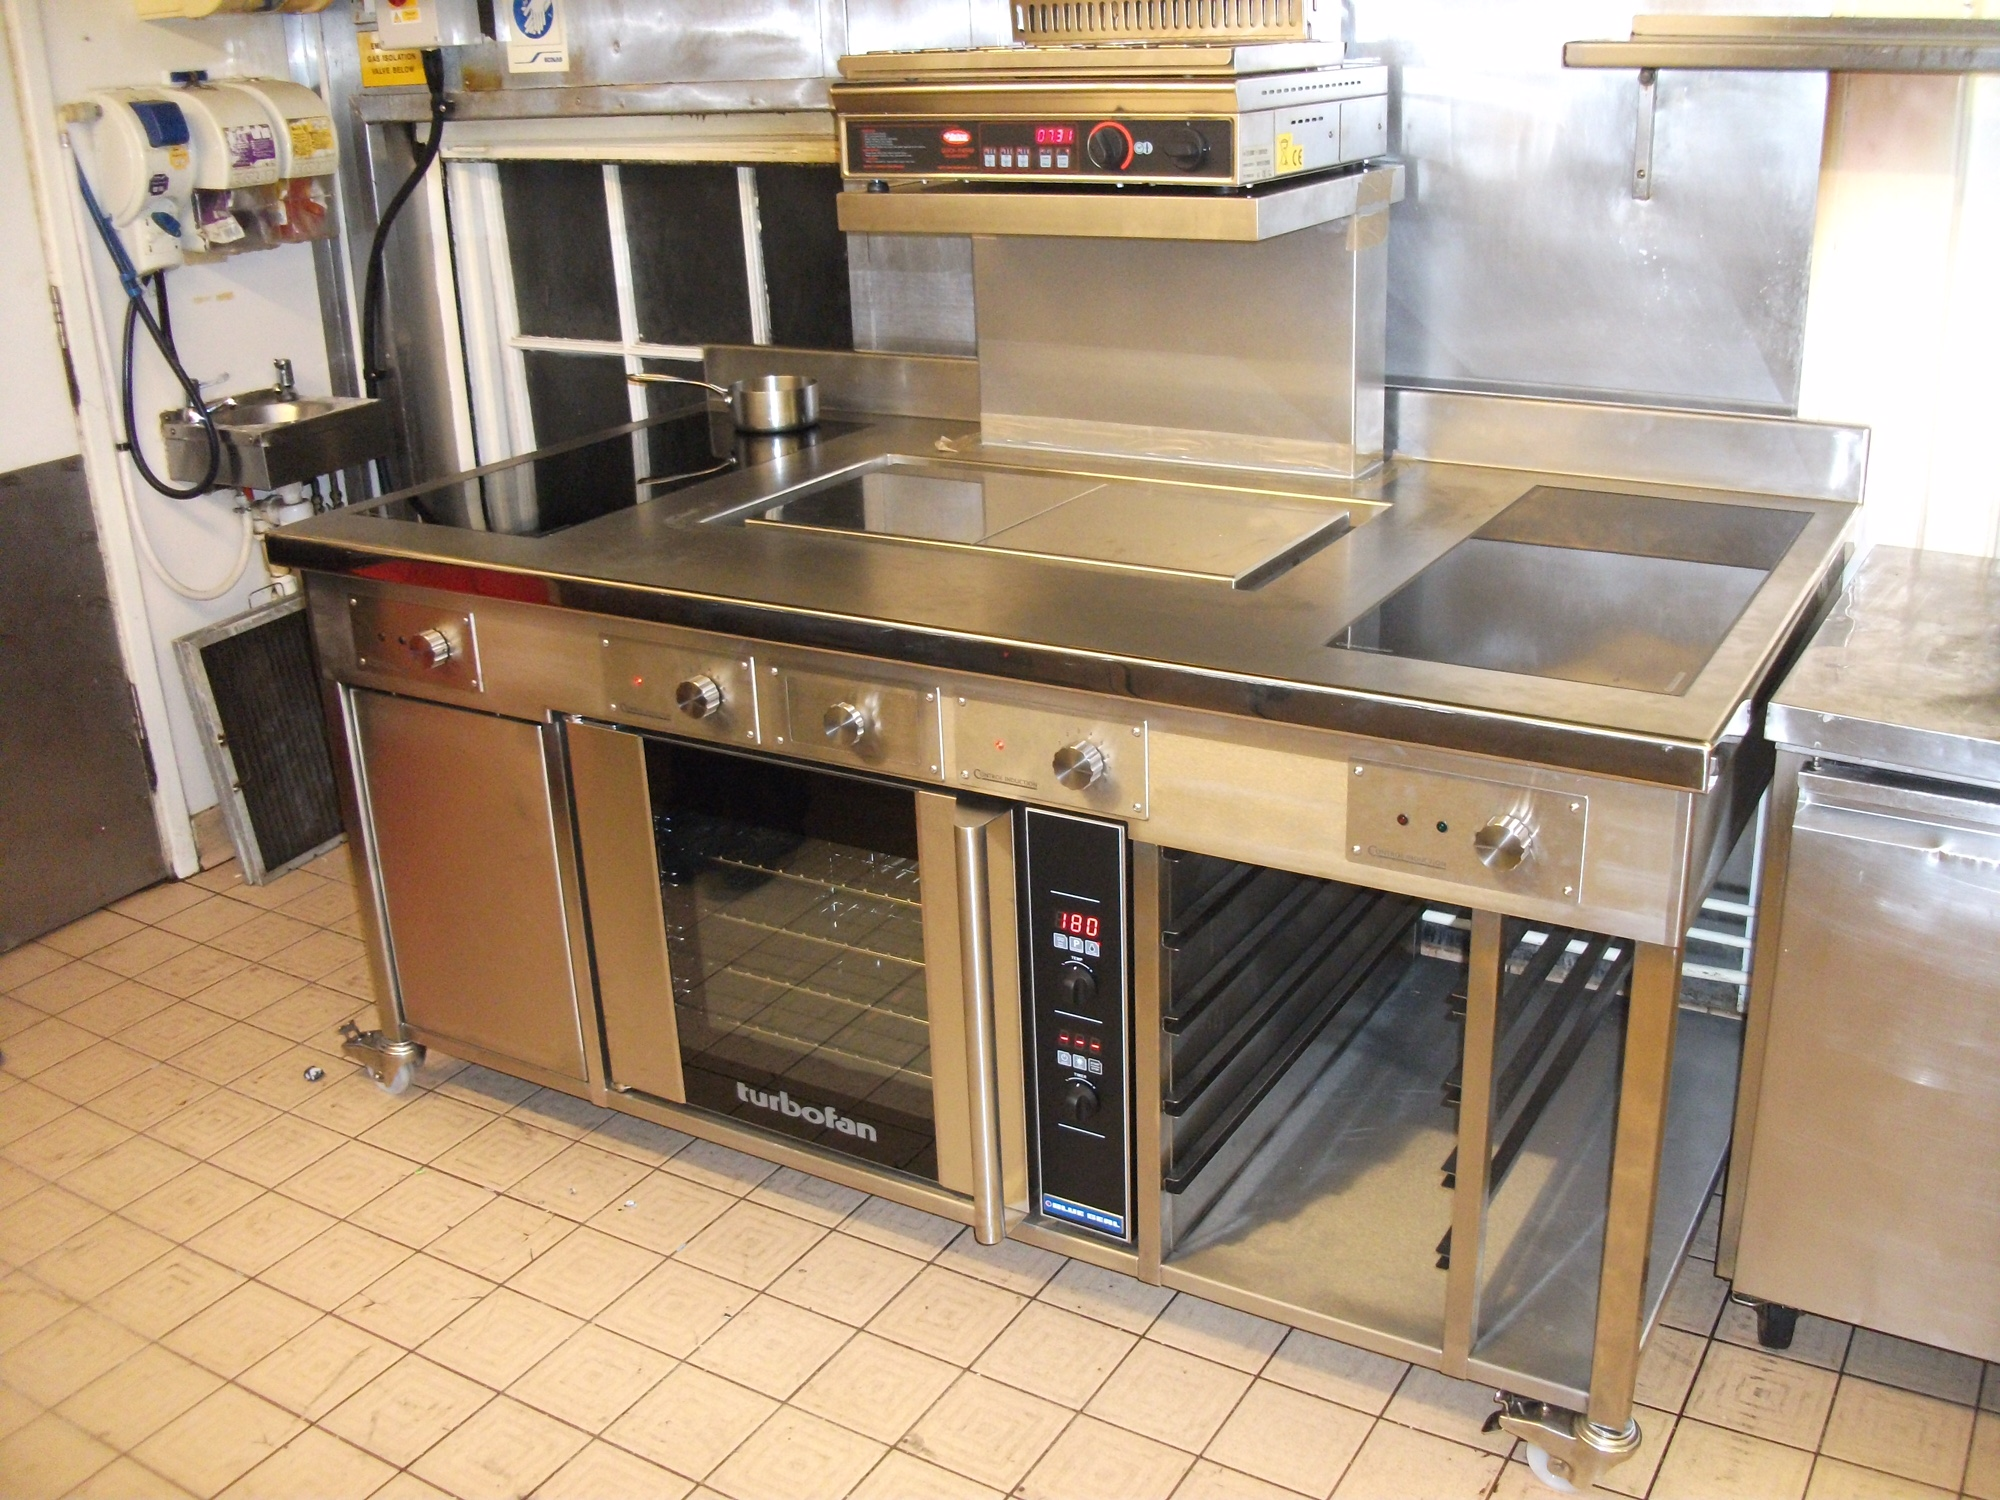 Induction cooking suite with Sliders double plancha and oven